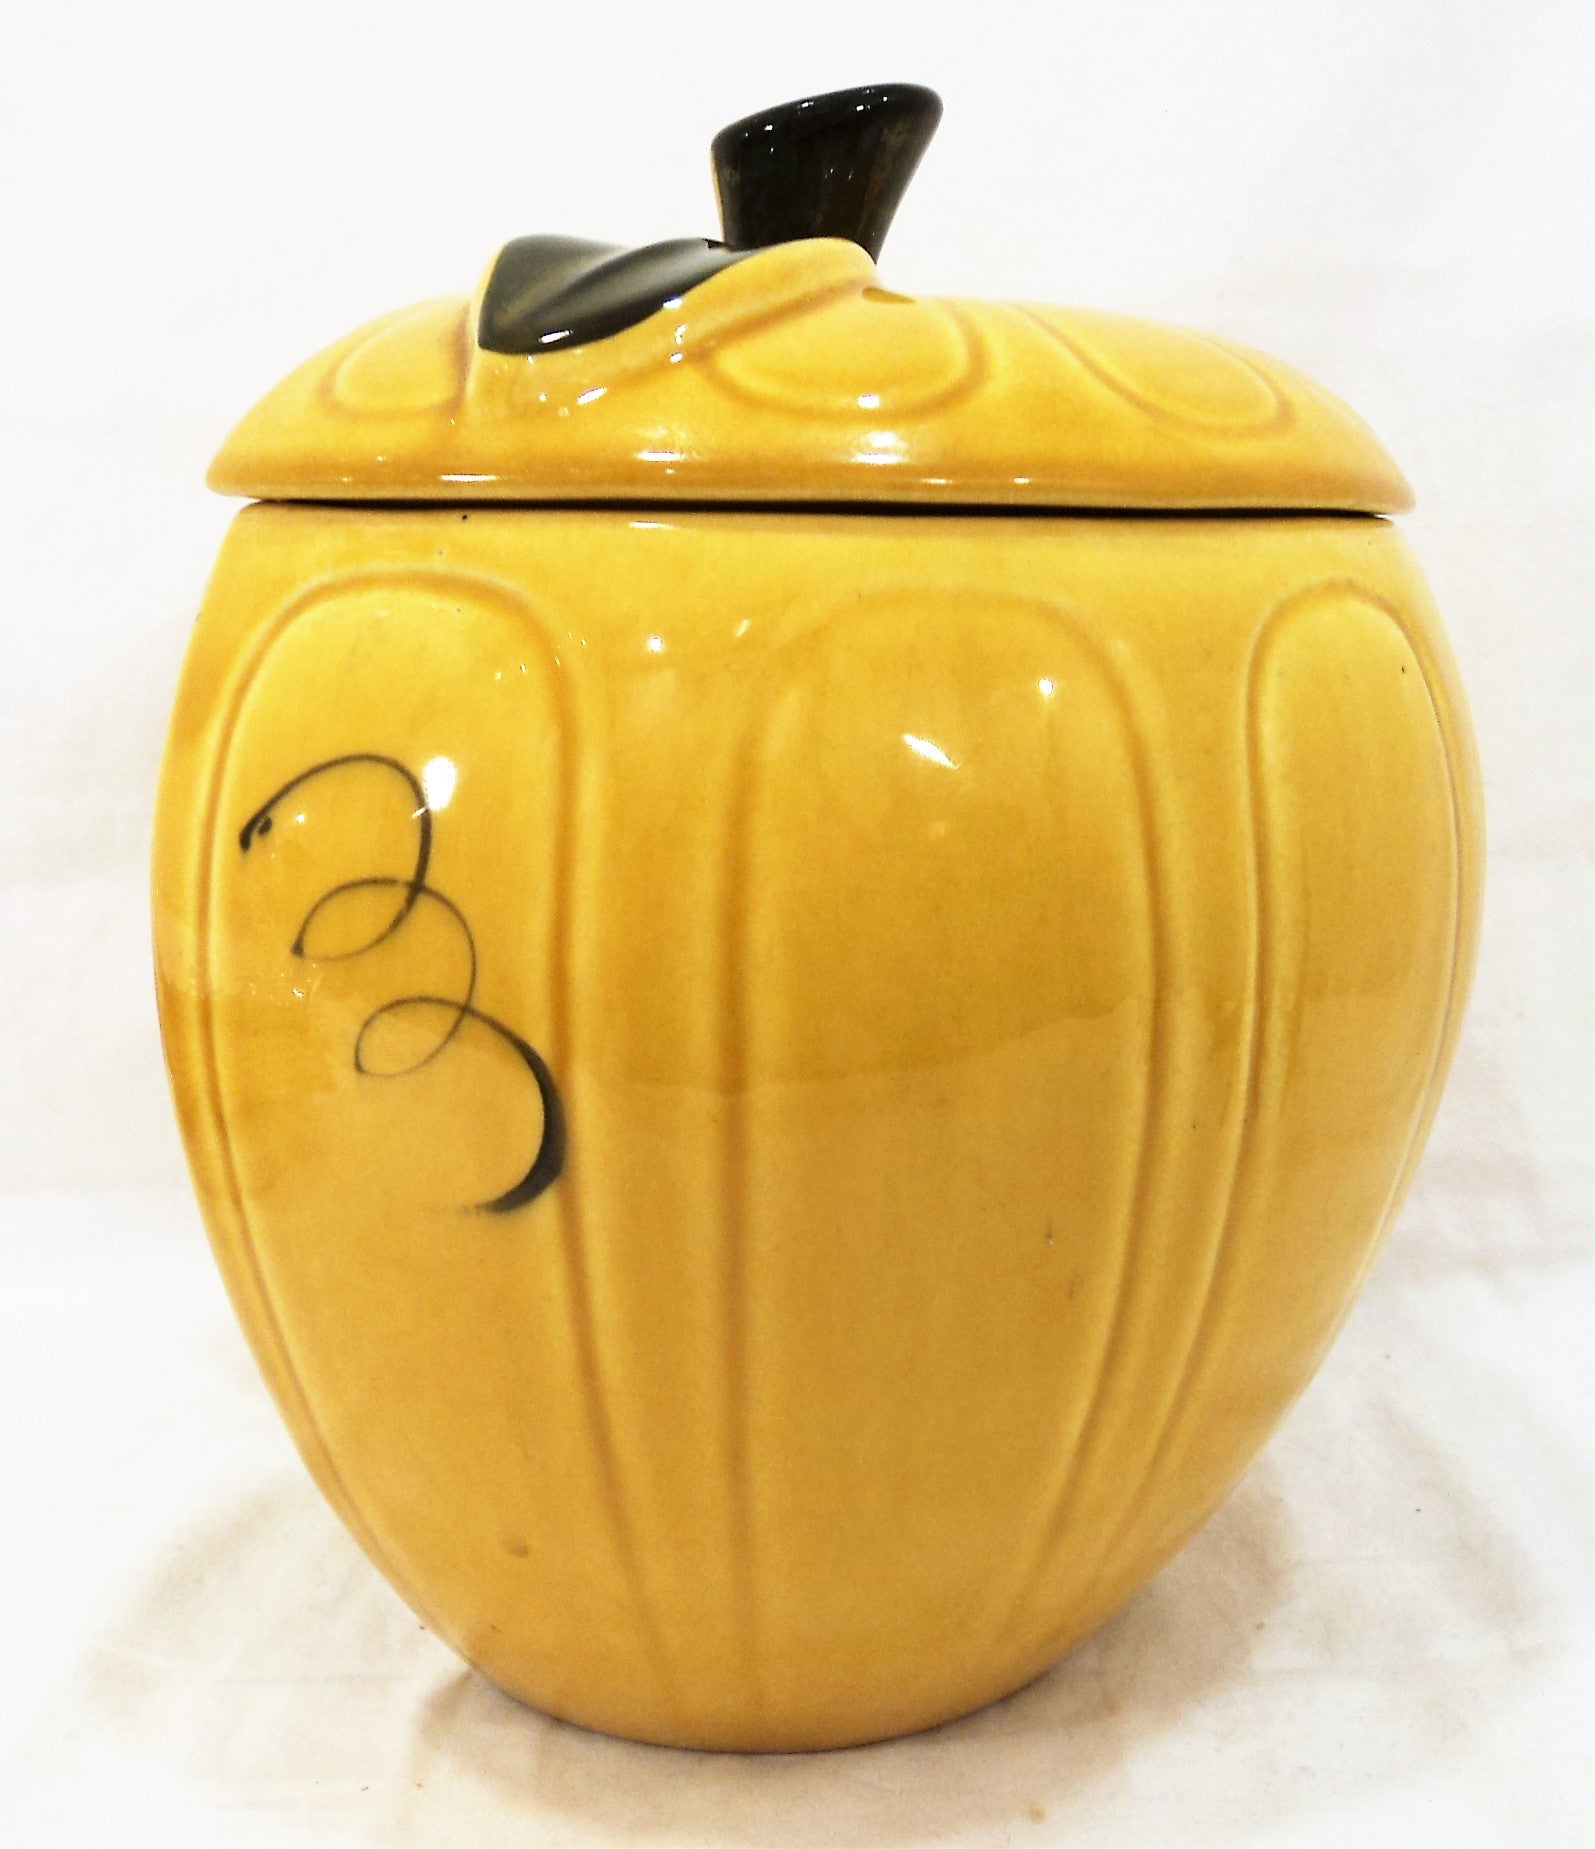 Vintage 1960s Apple Cookie Jar